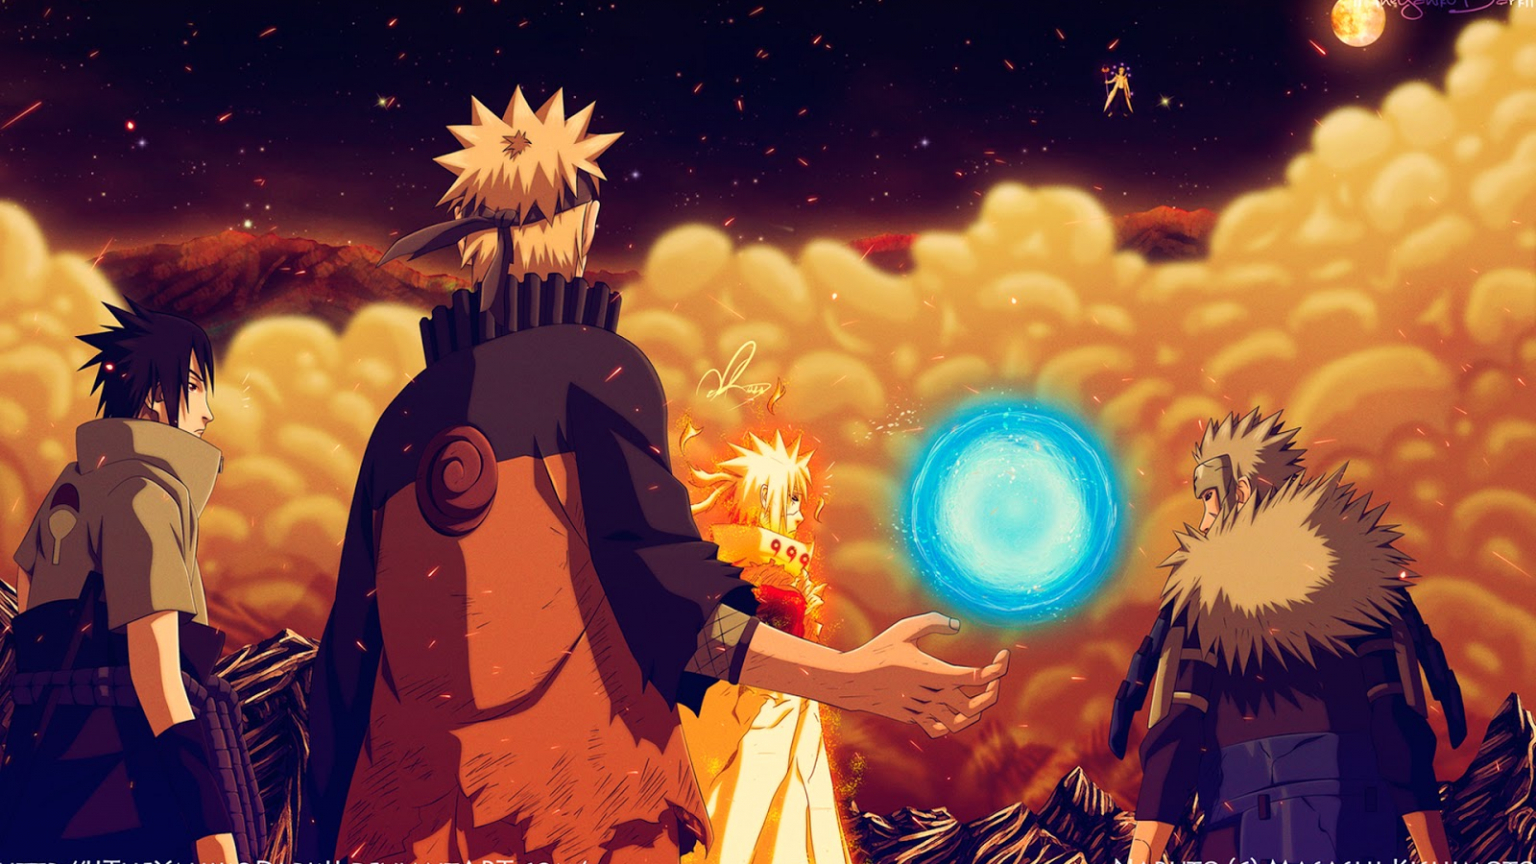 Free download naruto rasengan tobirama senju minato sasuke vs obito hd  anime [1600x1000] for your Desktop, Mobile & Tablet | Explore 50+ Naruto  Obito Wallpaper | Obito Uchiha Wallpaper, Madara and Obito